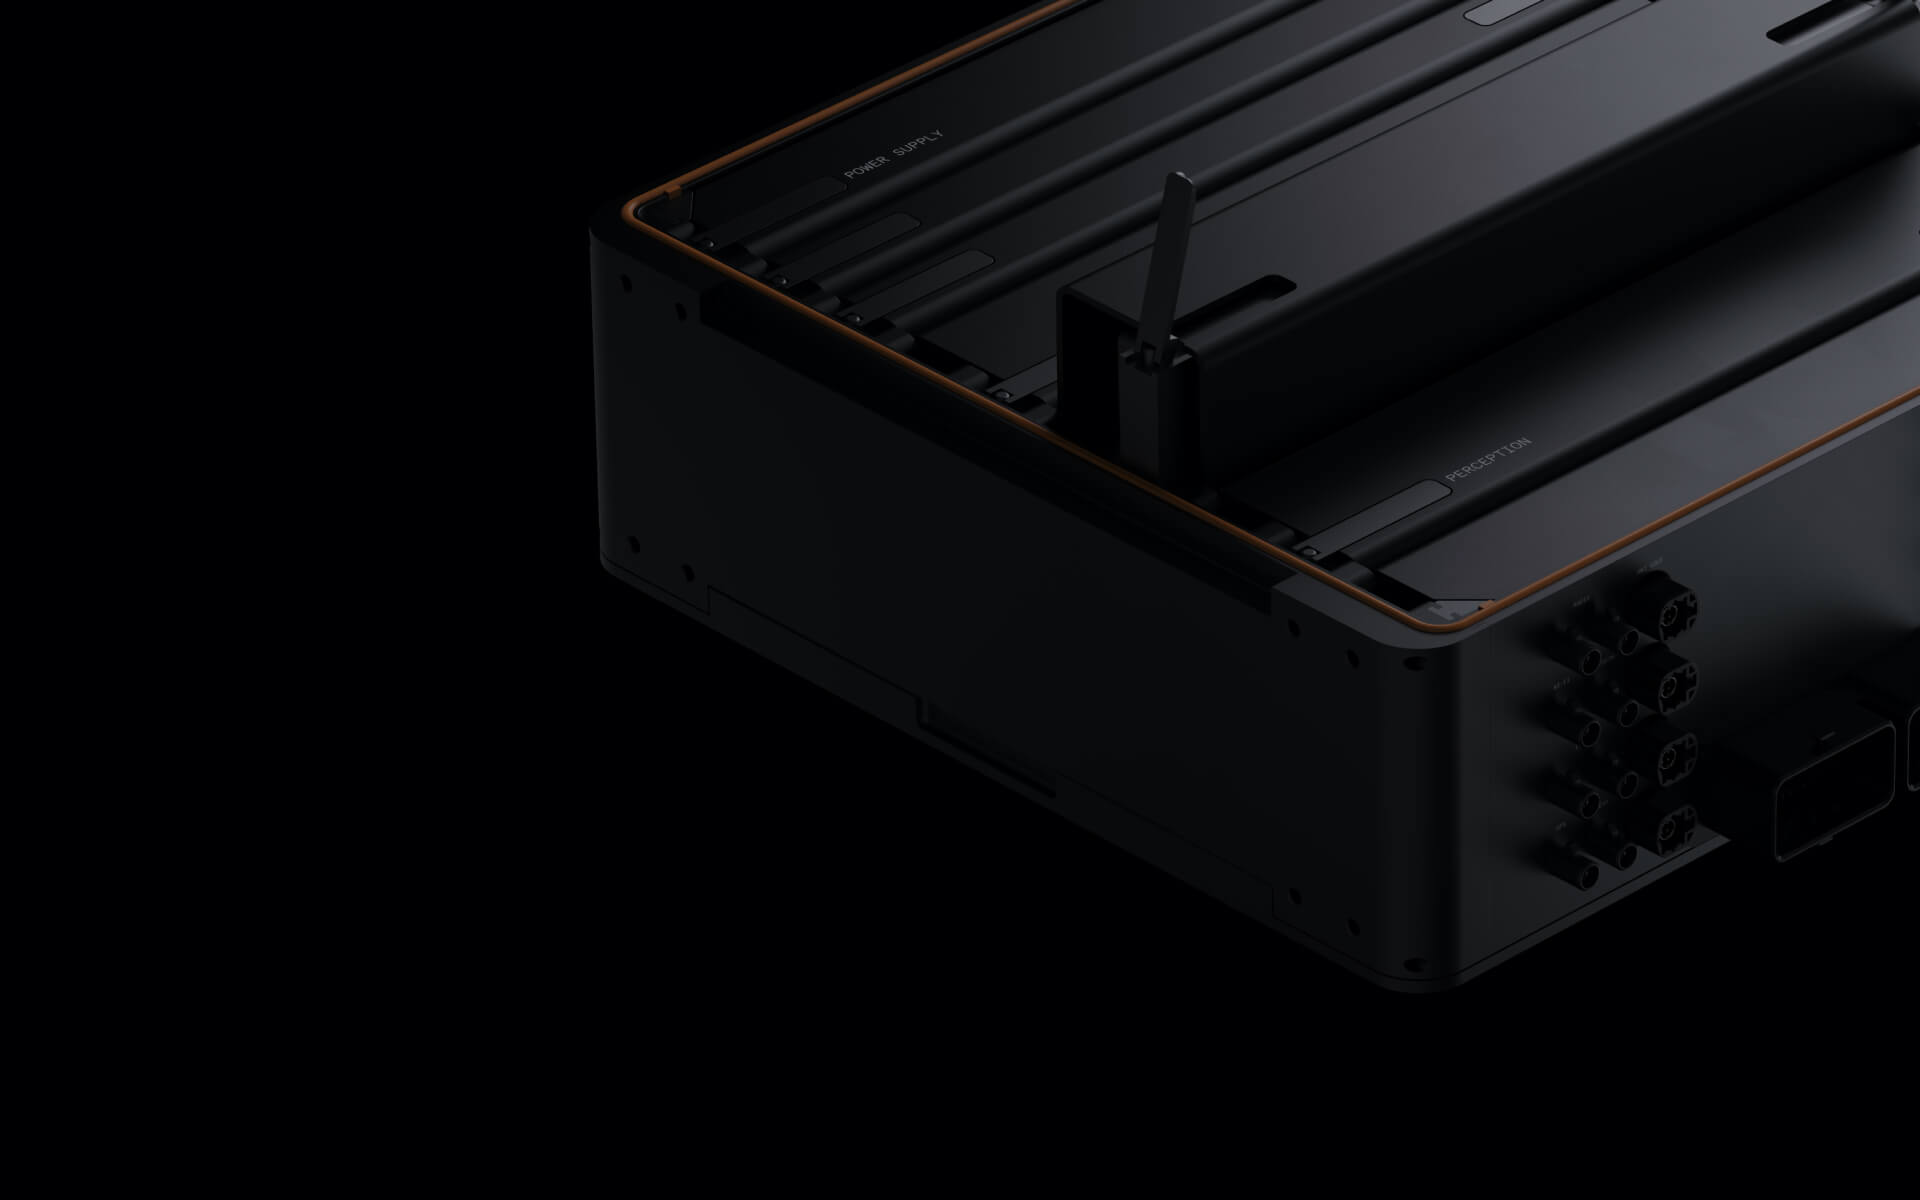 Black Arrival Unified Computing Platform (UCP) Device on a Dark Background